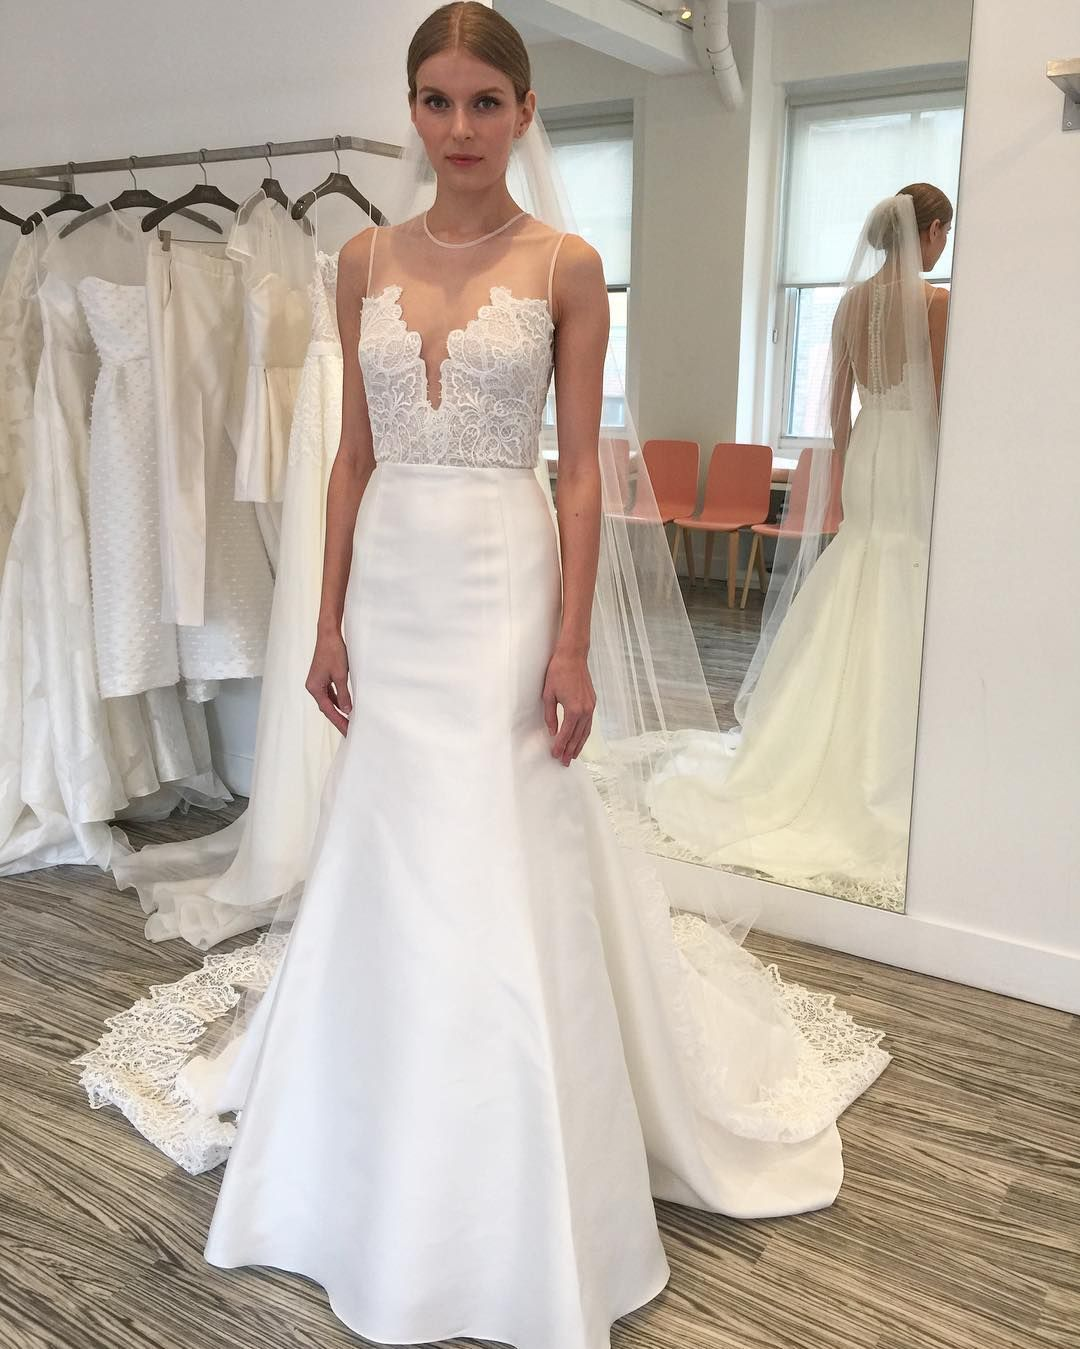 Custom wedding dresses by darius bridal custom wedding dress custom wedding dresses by darius bridal ombrellifo Choice Image